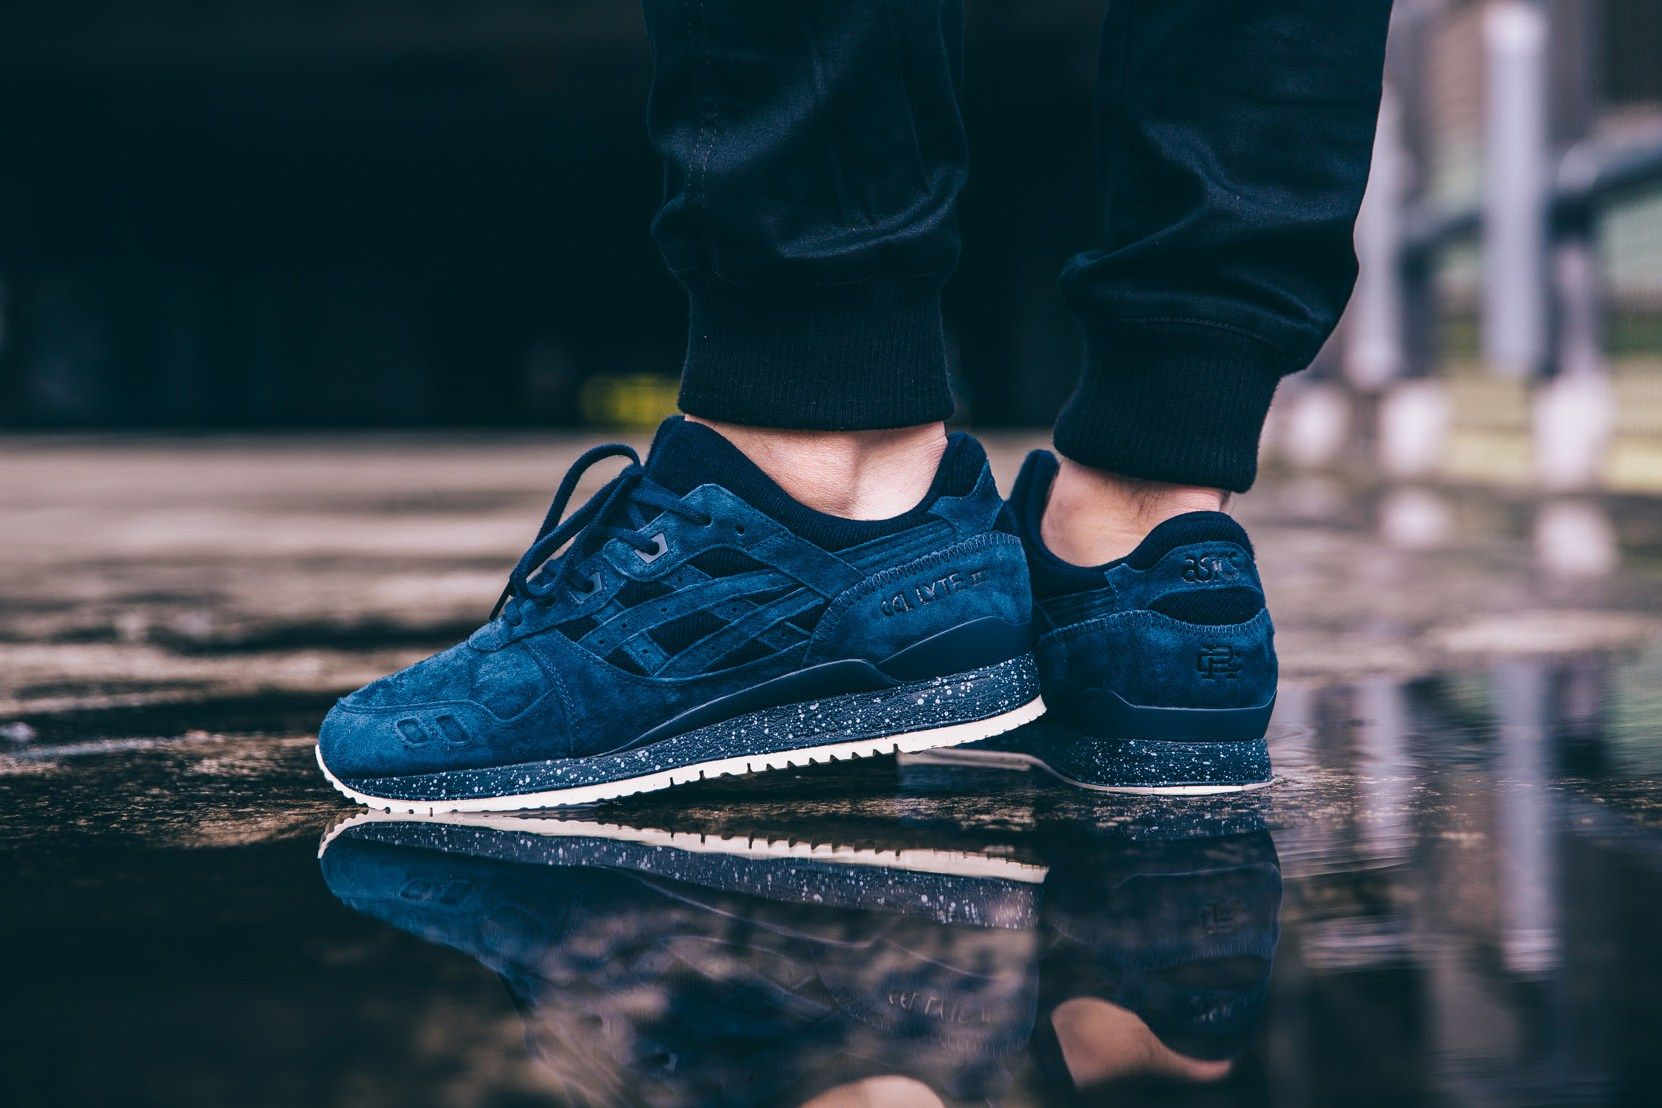 0d37351821f A Closer Look at the ASICS Tiger x Reigning Champ GEL-Lyte III Collaboration